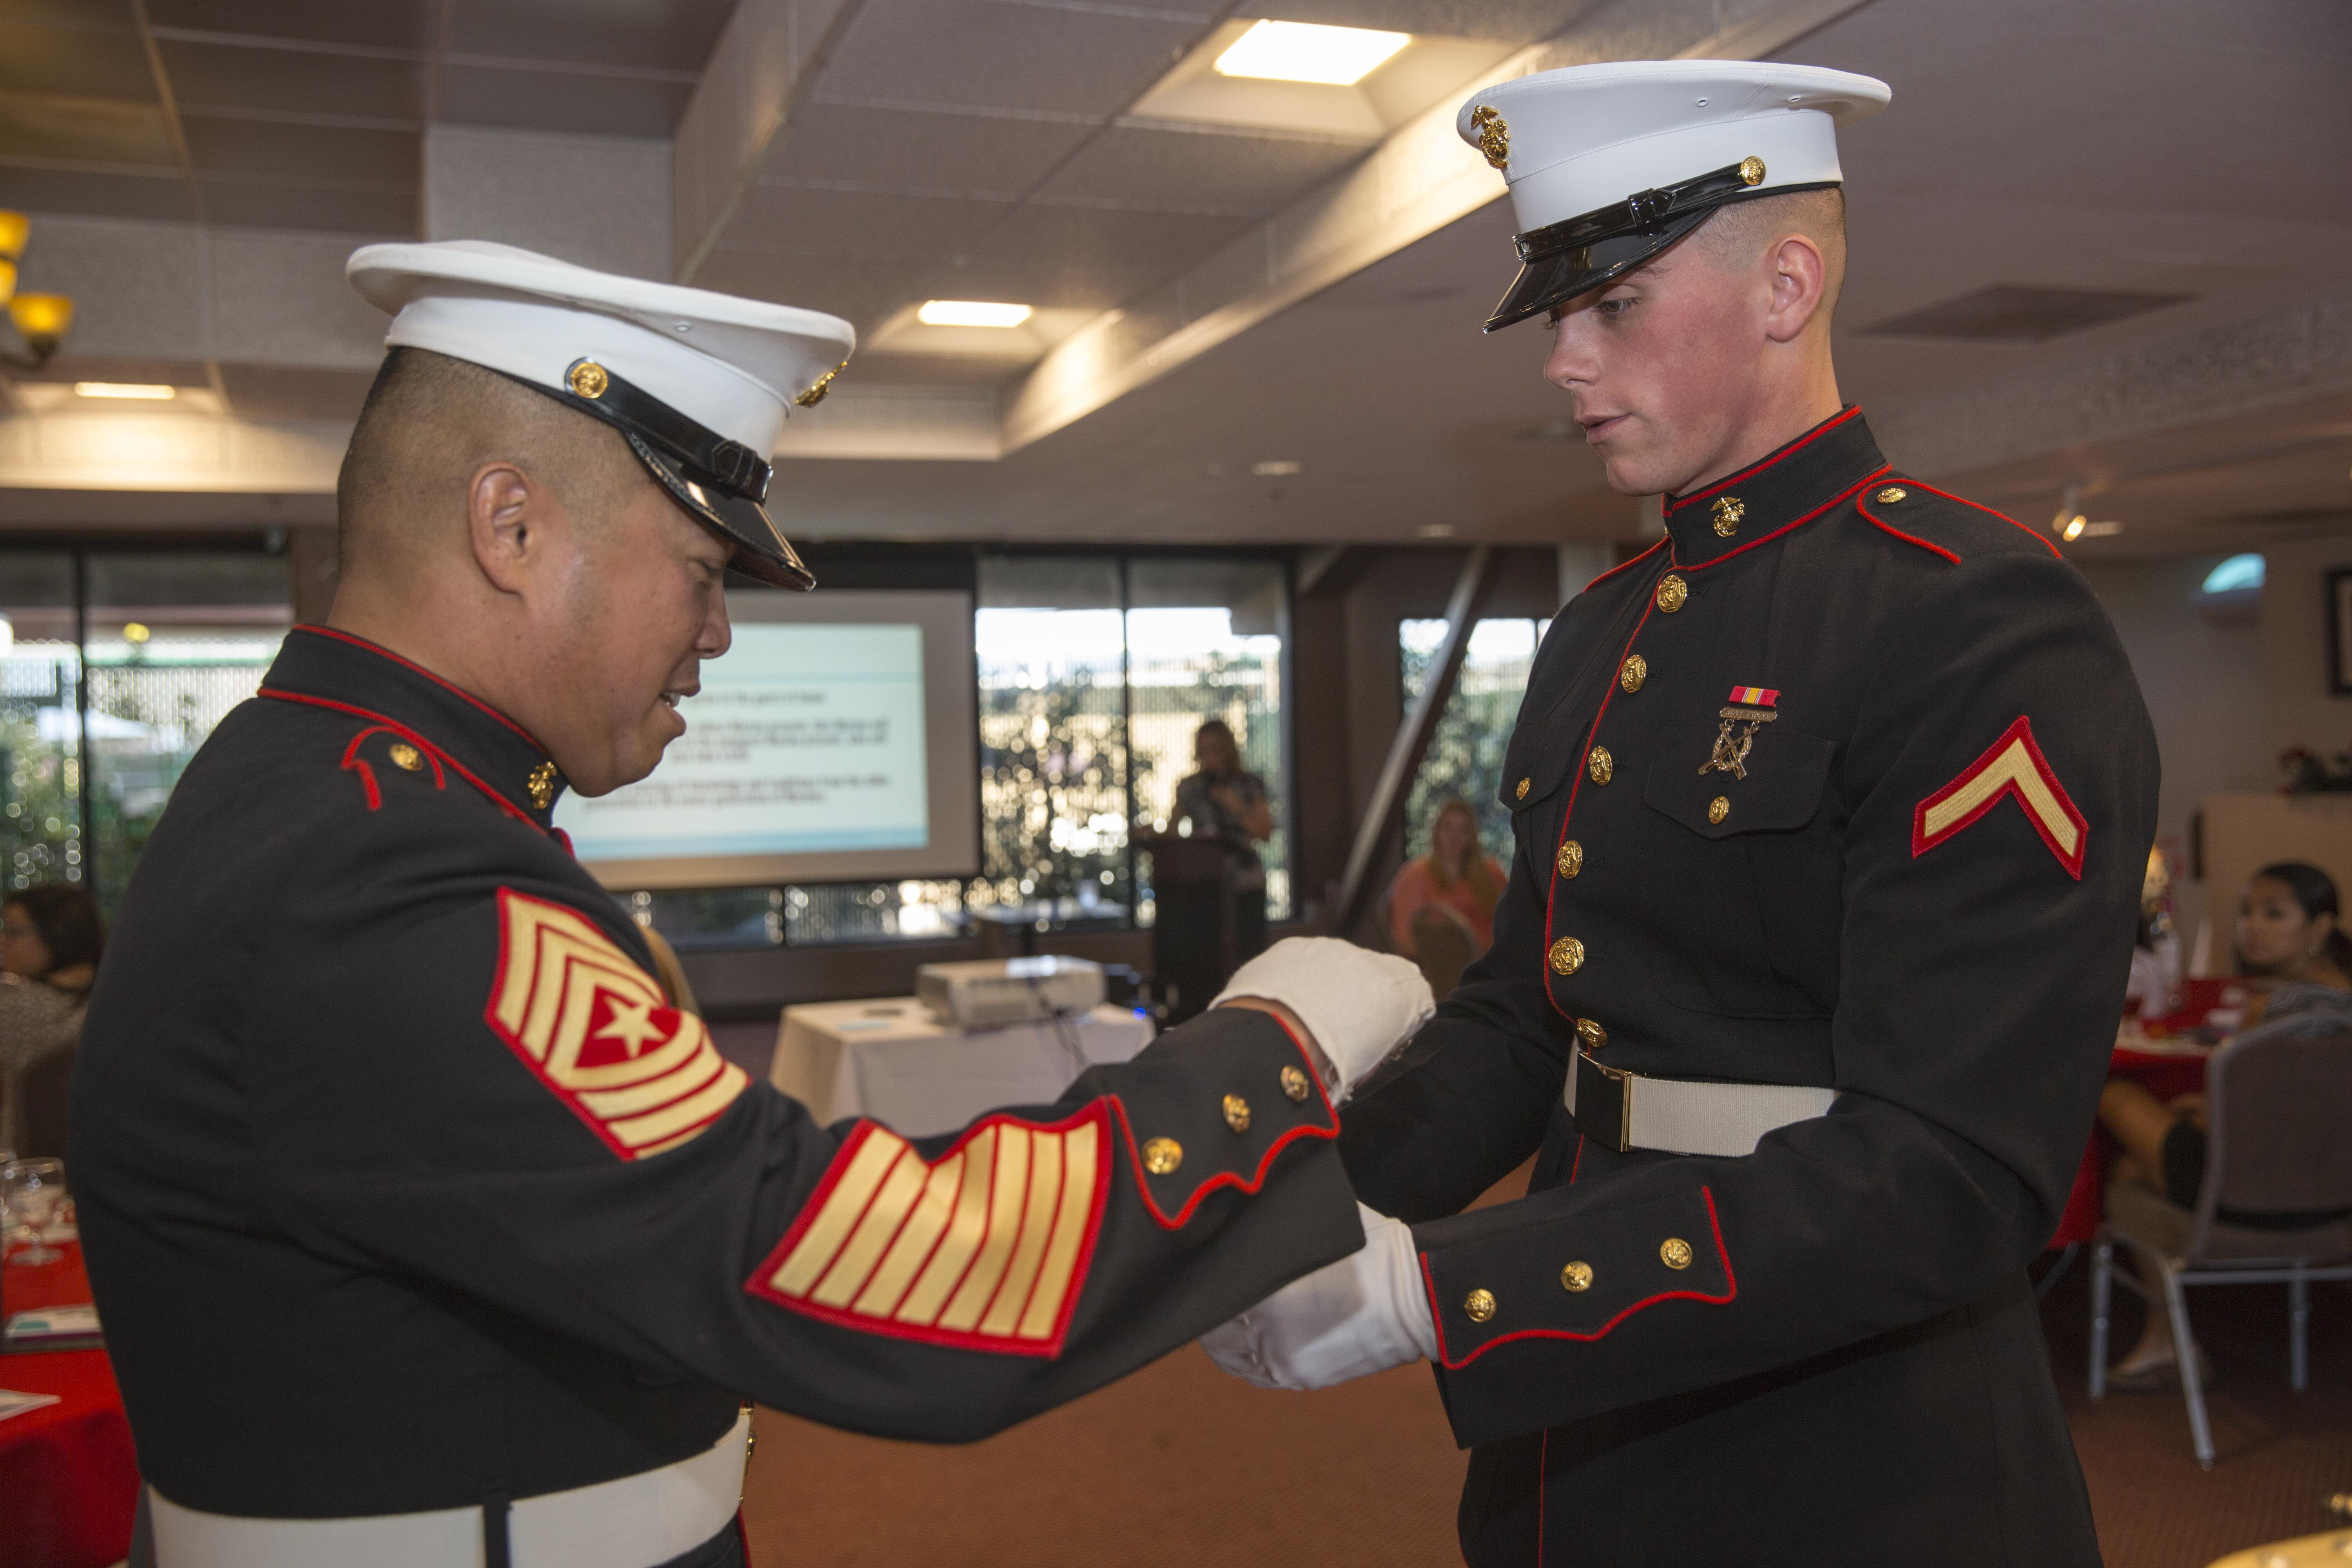 Belle of the Ball 2015 > Marine Corps Air Ground Combat